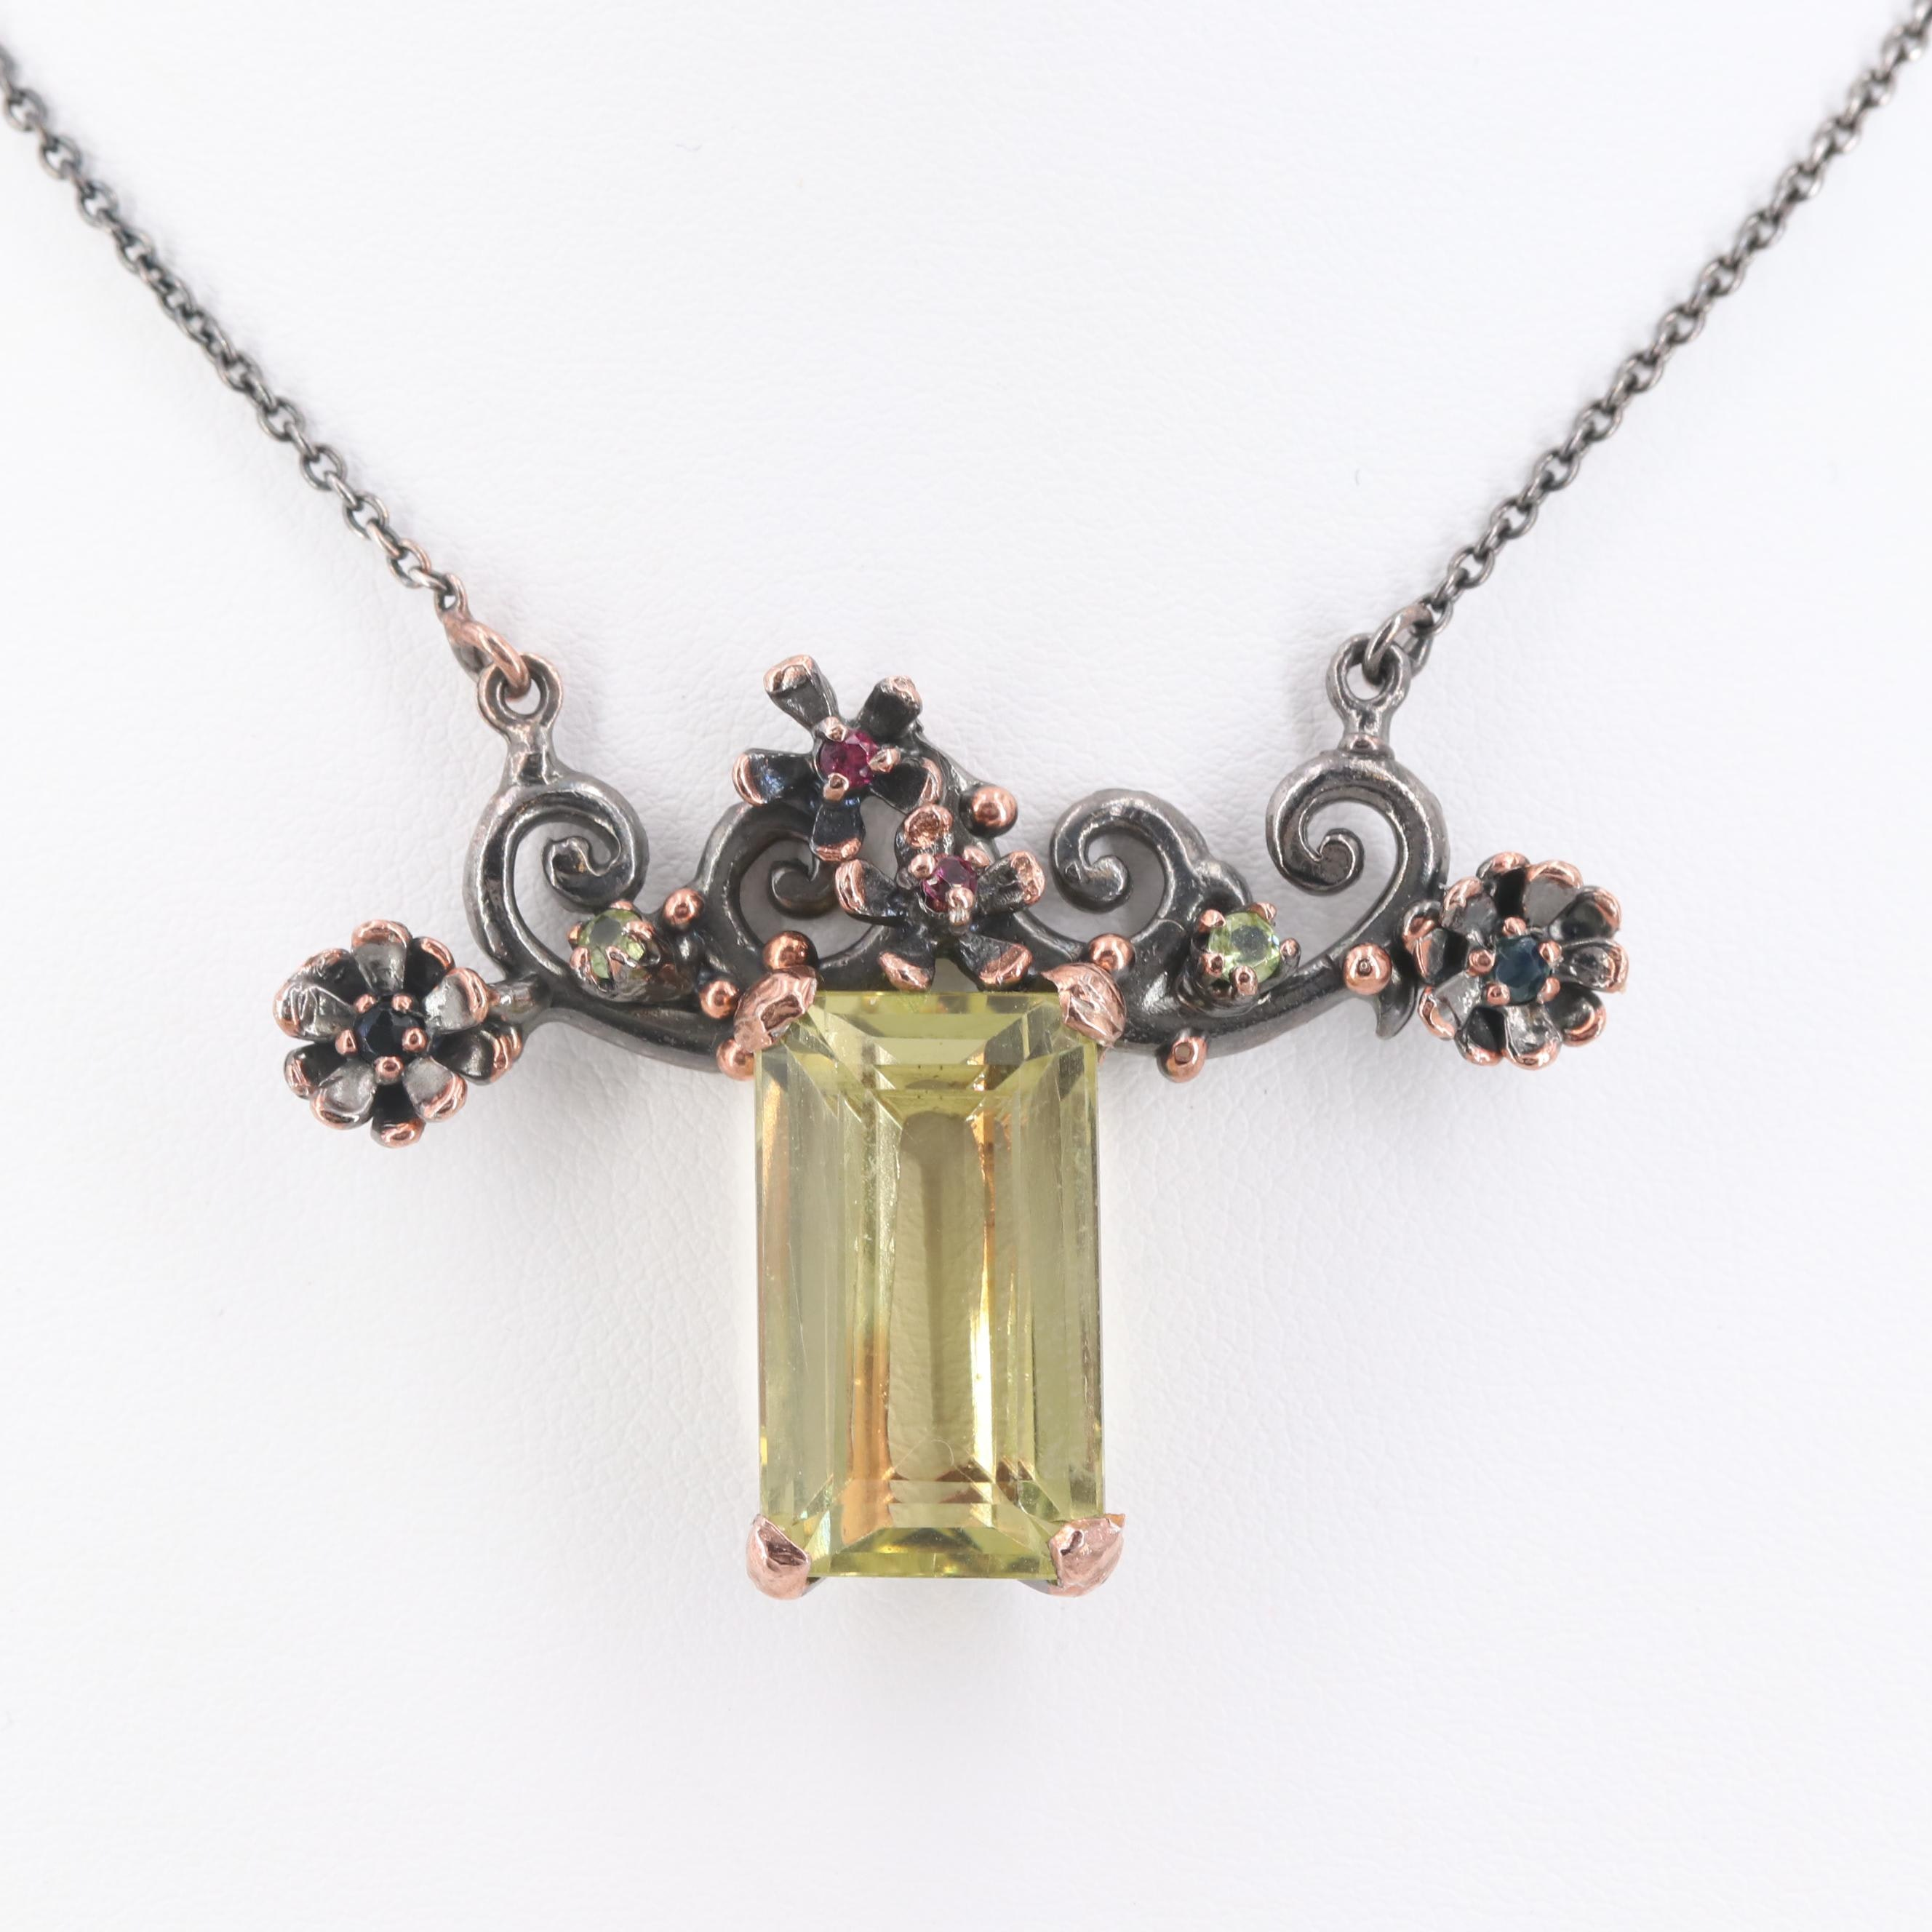 Sterling Silver Citrine, Ruby and Gemstone Necklace with Rose Tone Accents